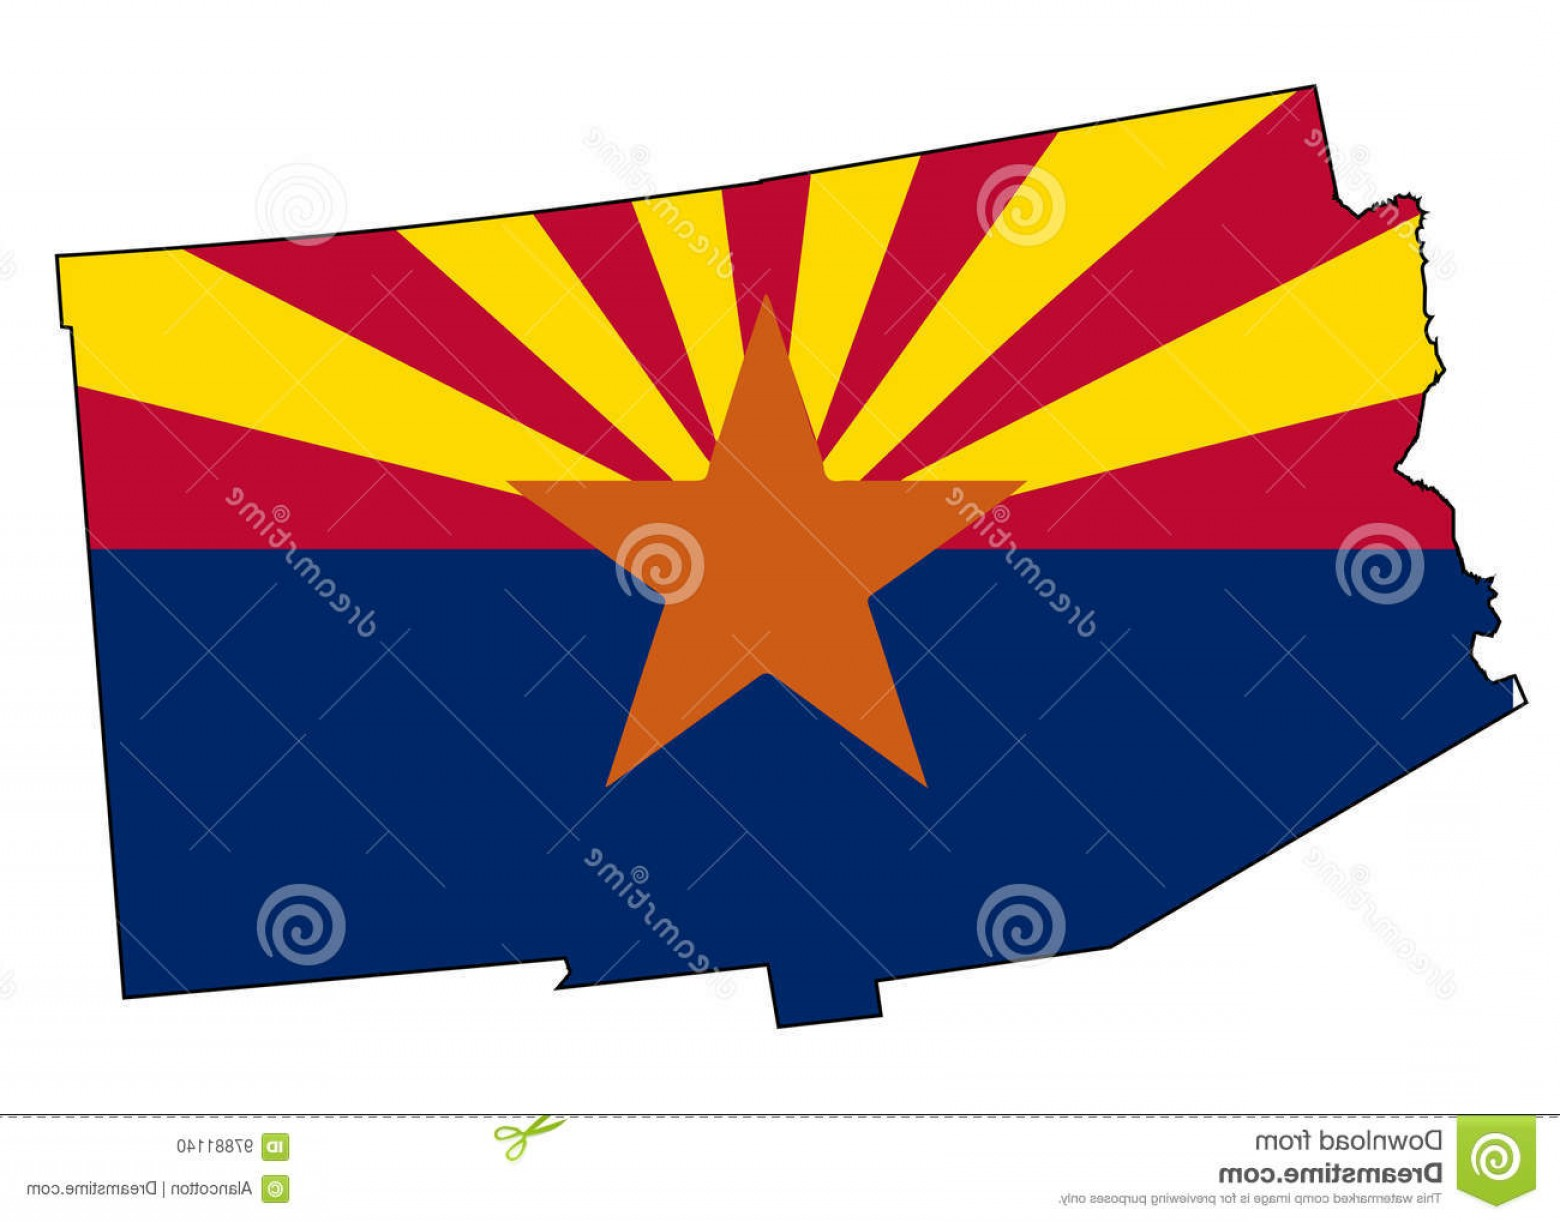 Arizona State Outline Vector: Stock Illustration Arizona State Outline Map Flag White Background Inset Image